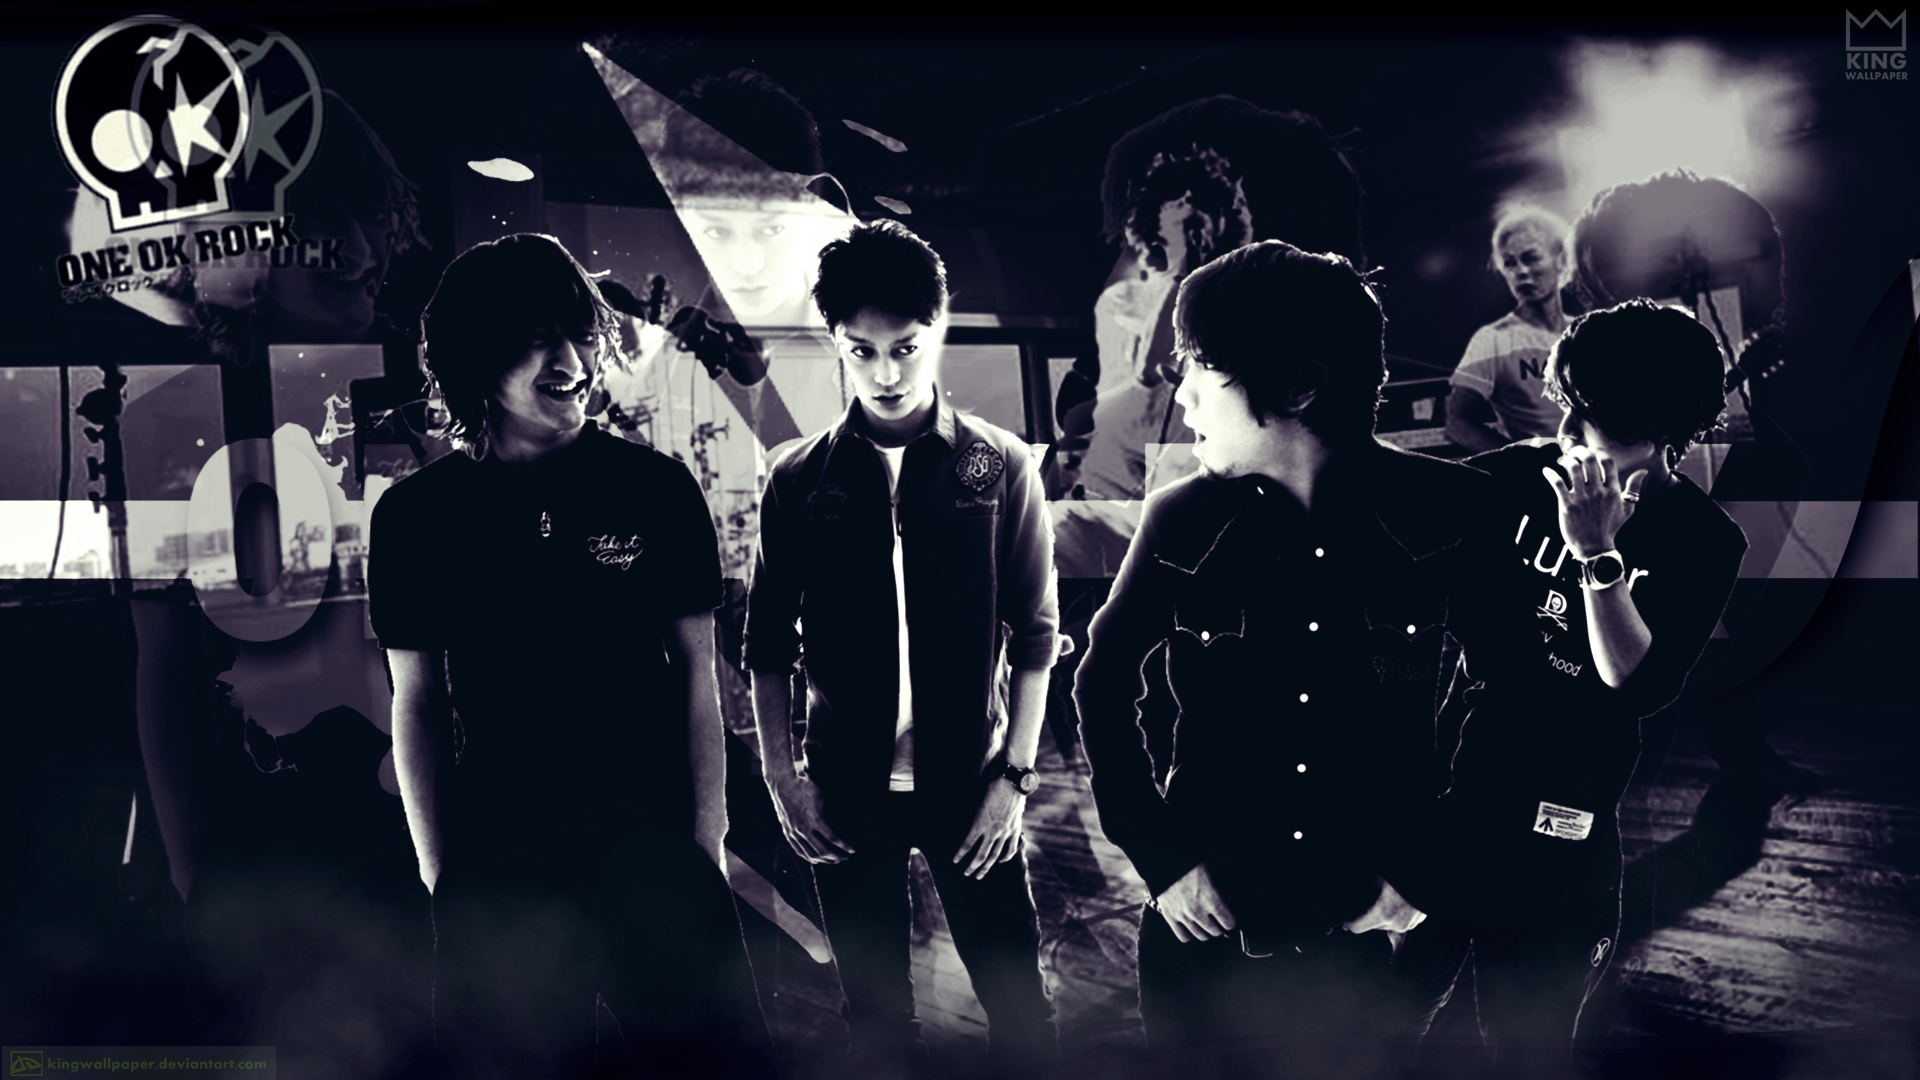 One Ok Rock Wallpaper - @kingwallpaper by Kingwallpaper on DeviantArt